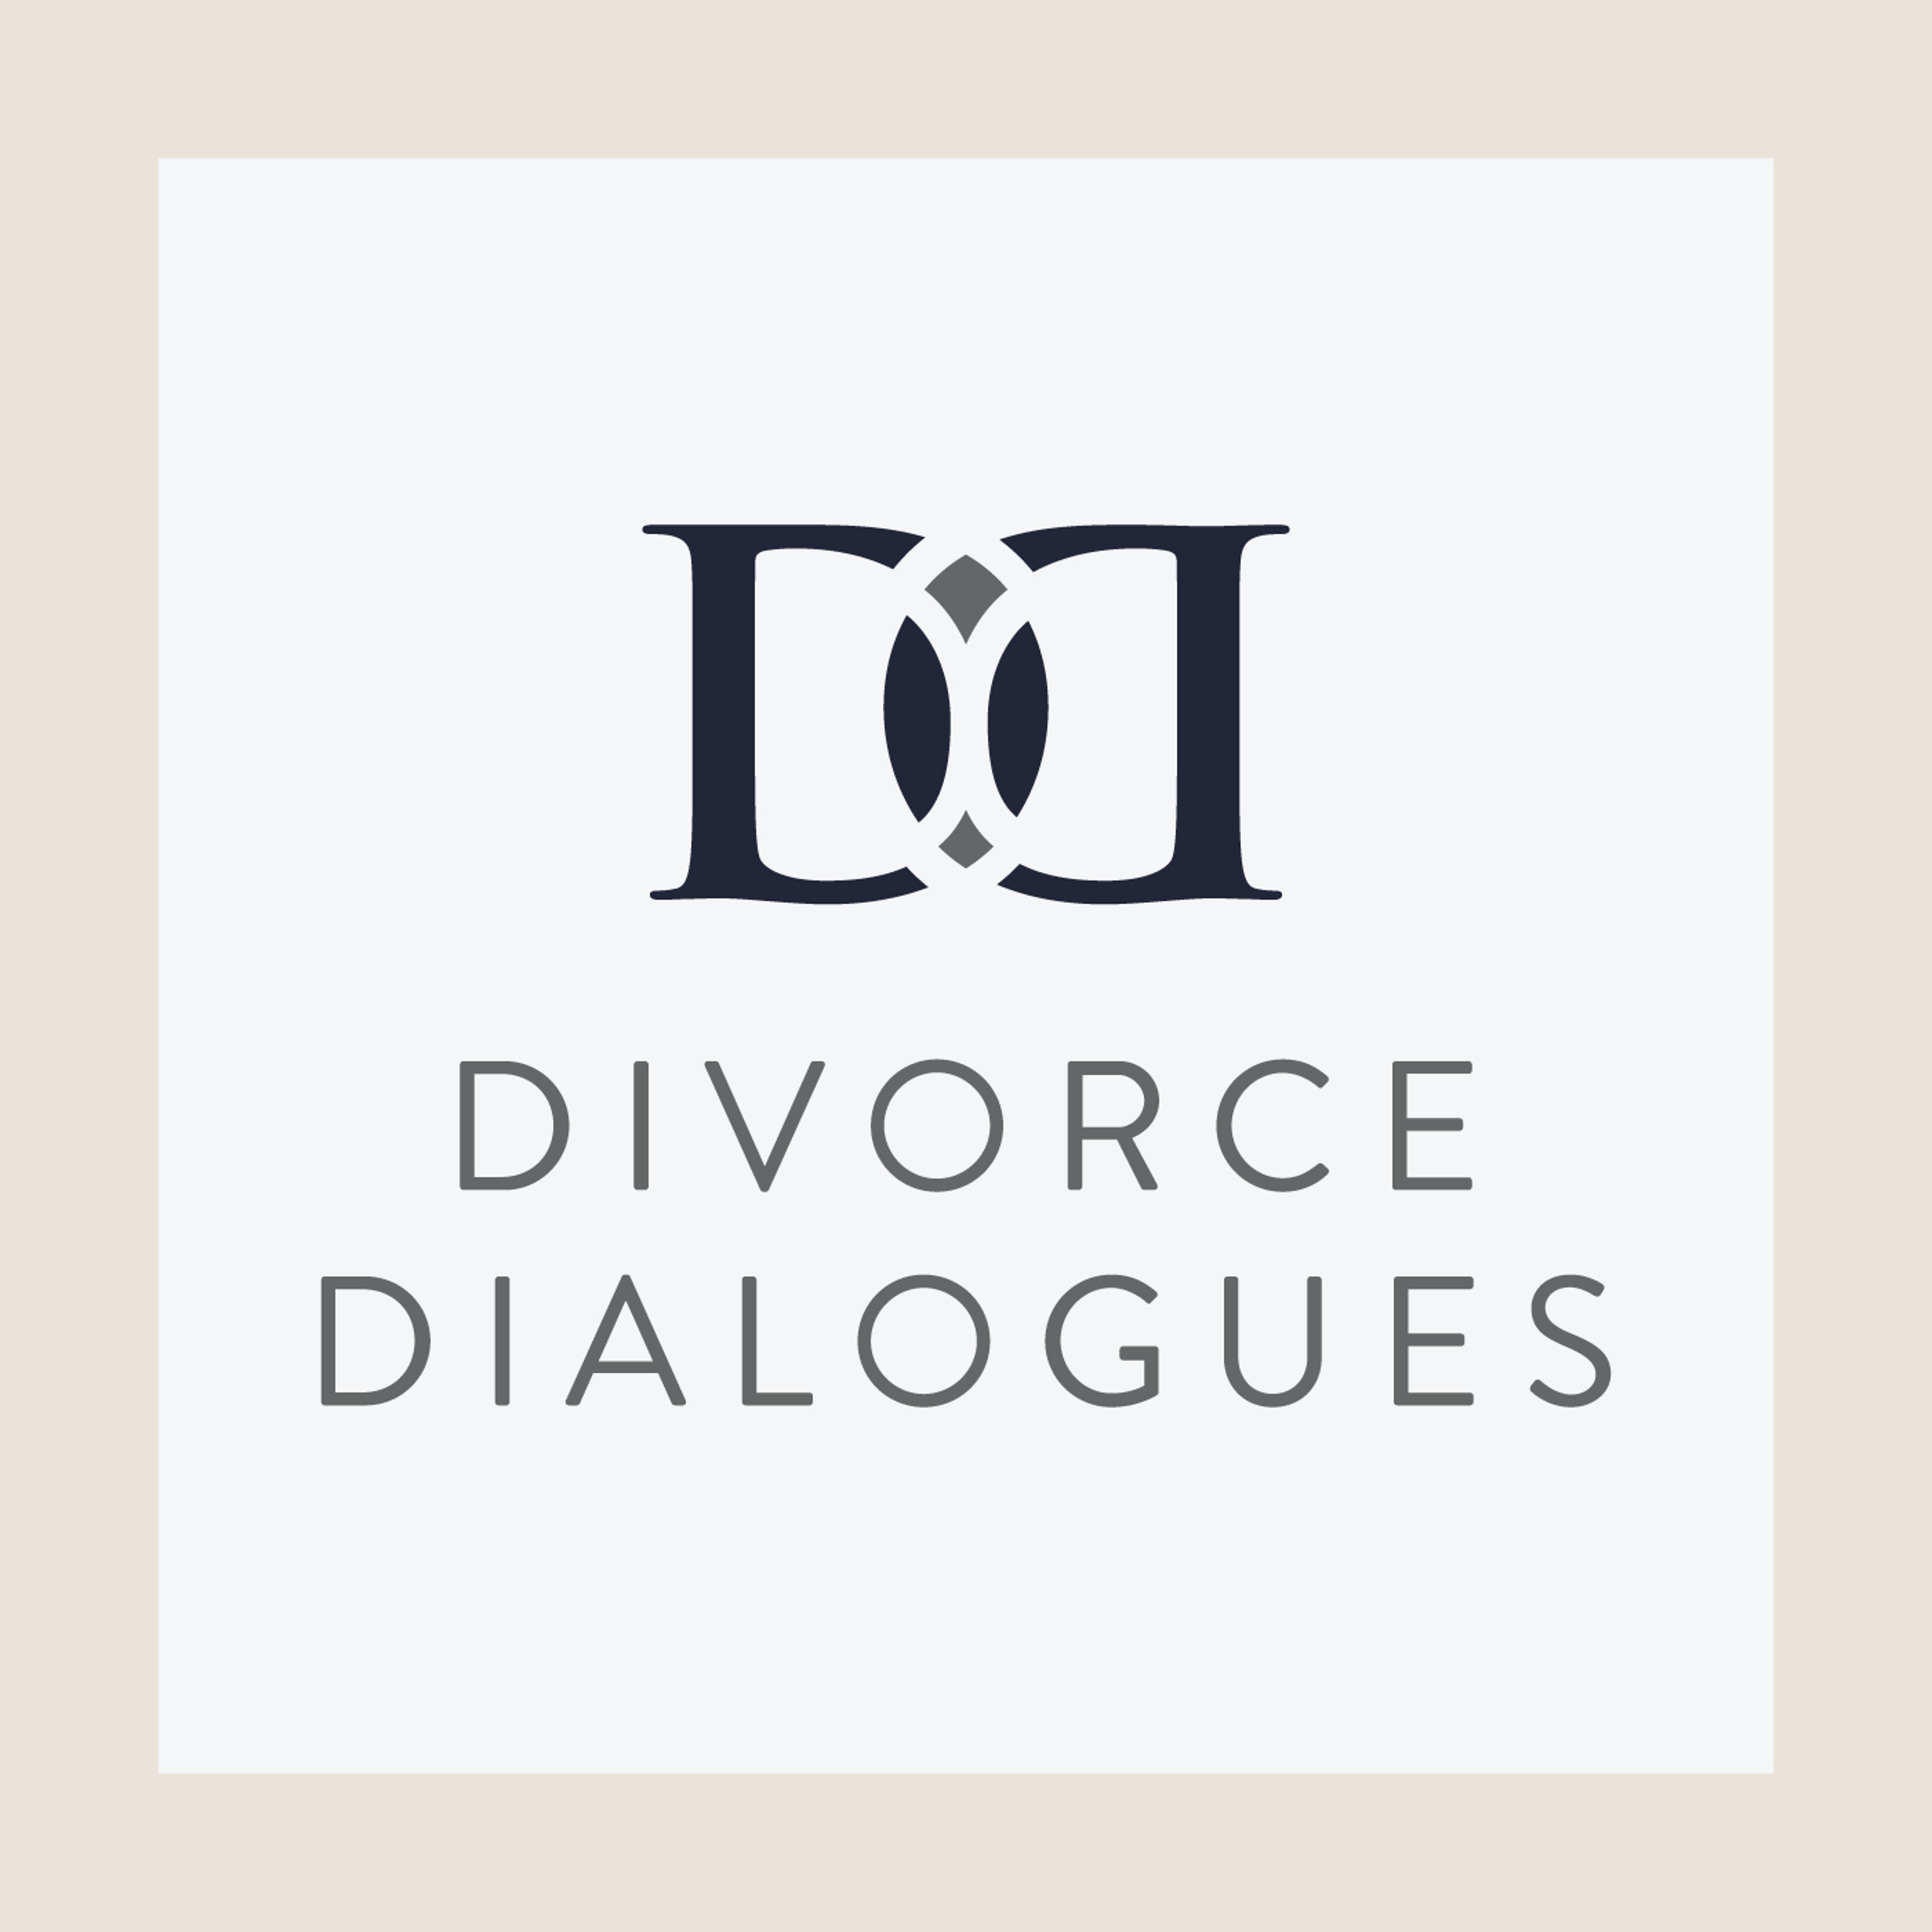 Divorce Dialogues - Rewriting Your Post-Divorce Storyline in 7 Simple Shifts with Deb Purdy